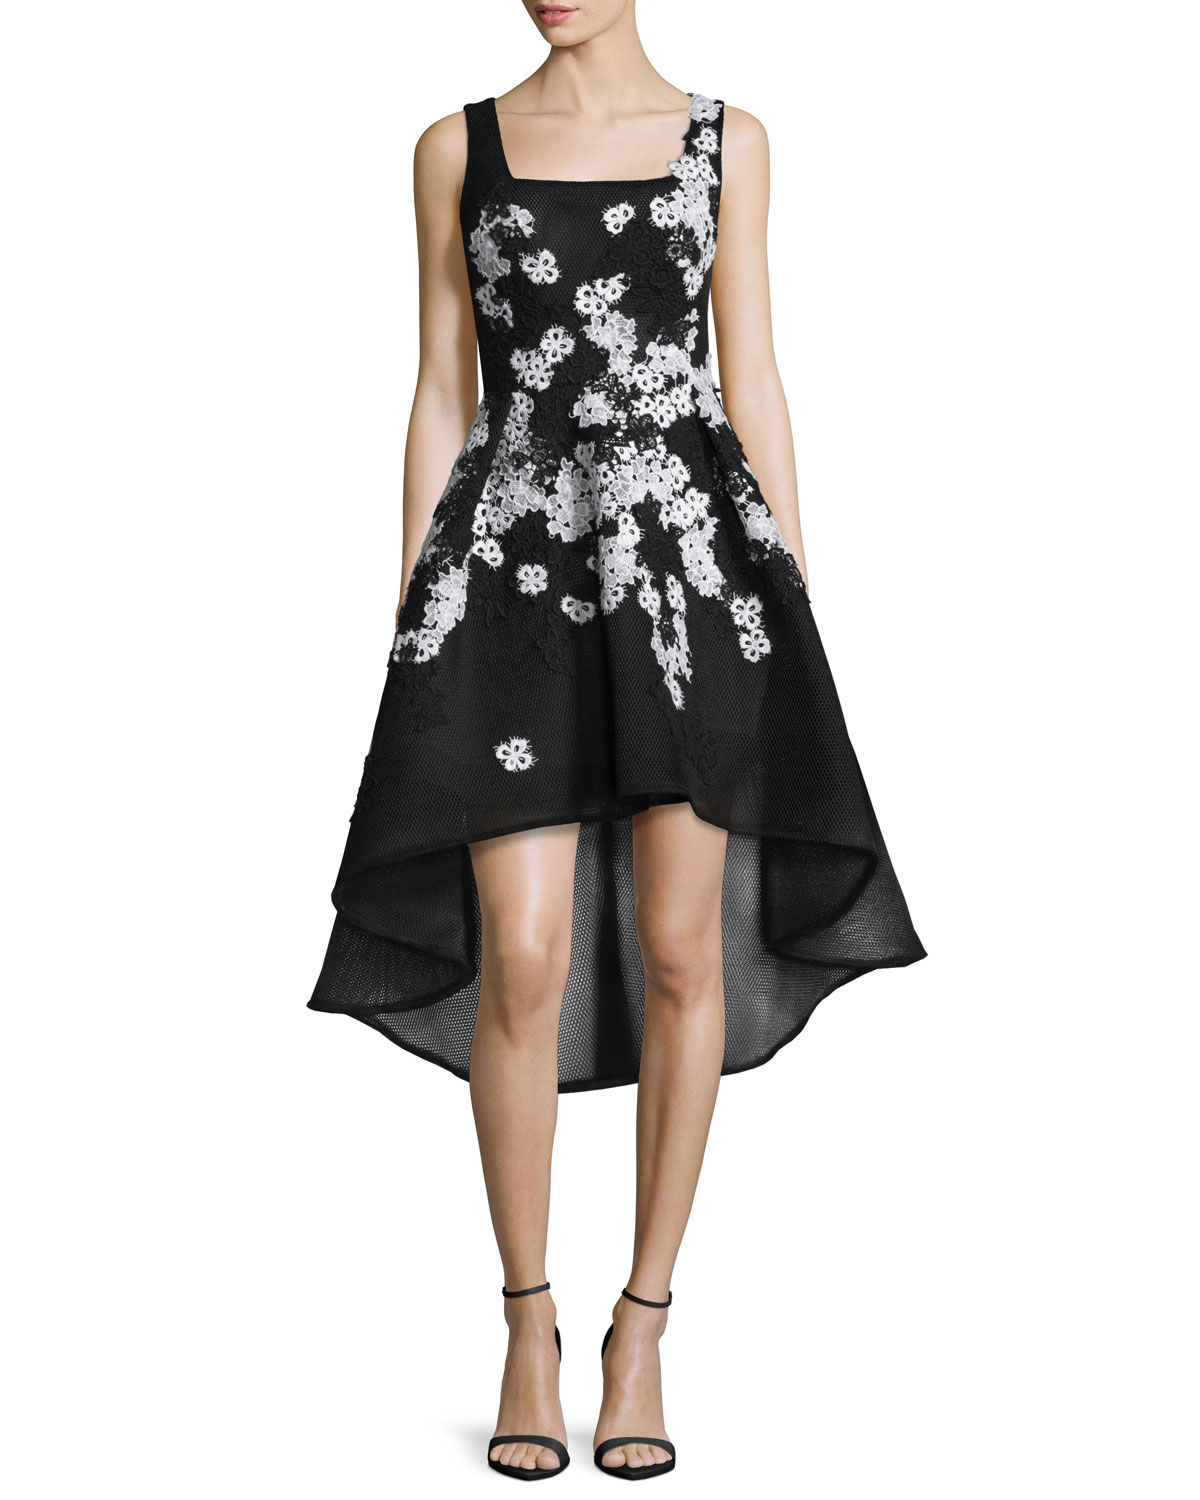 801afaa9bfe4 Jovani Sleeveless High-Low Lace-Trim Cocktail Dress